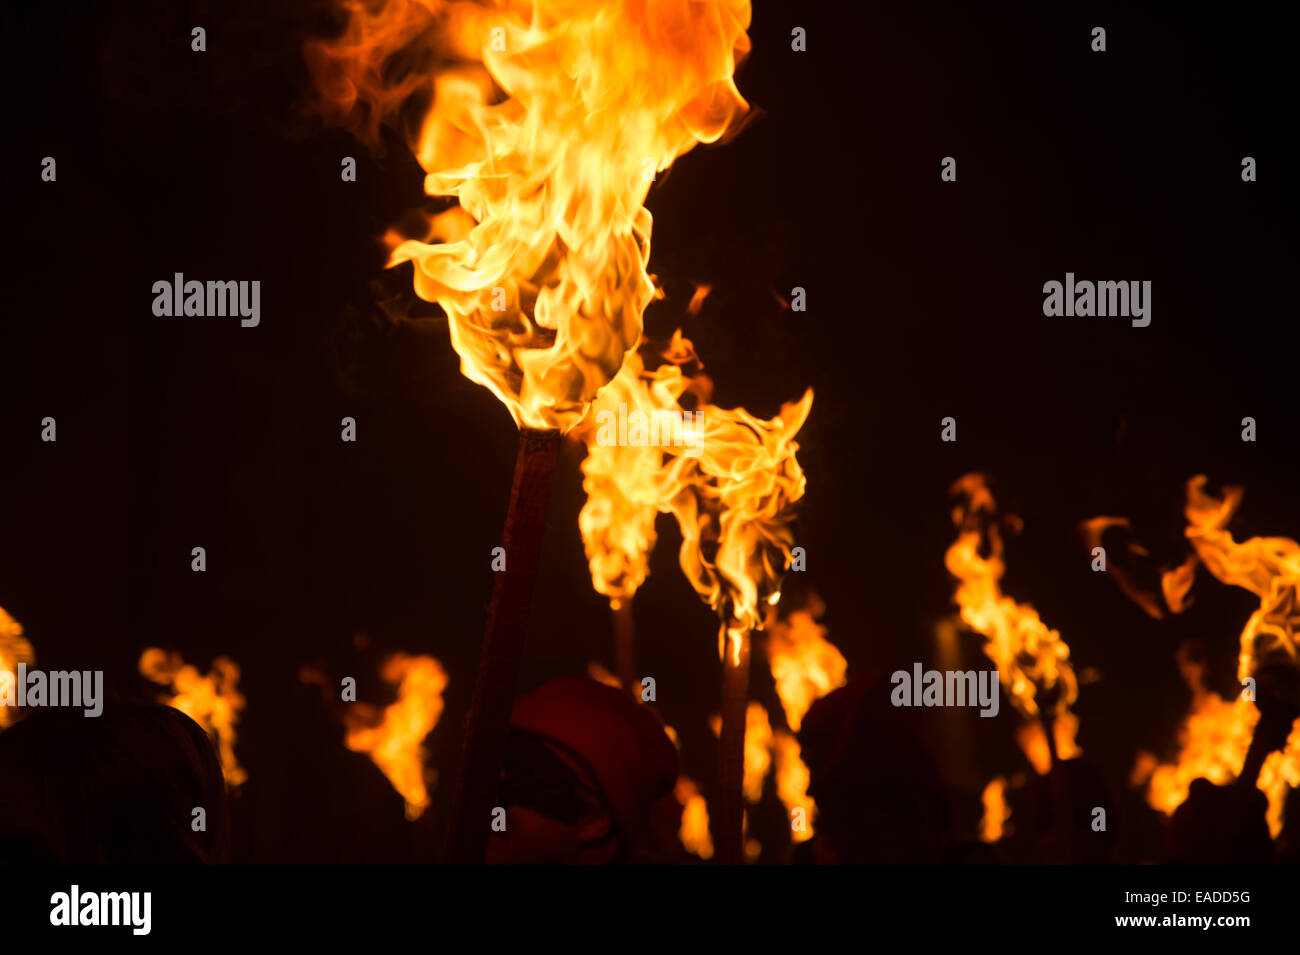 Guy Fawkes Night Stock Photos and Images